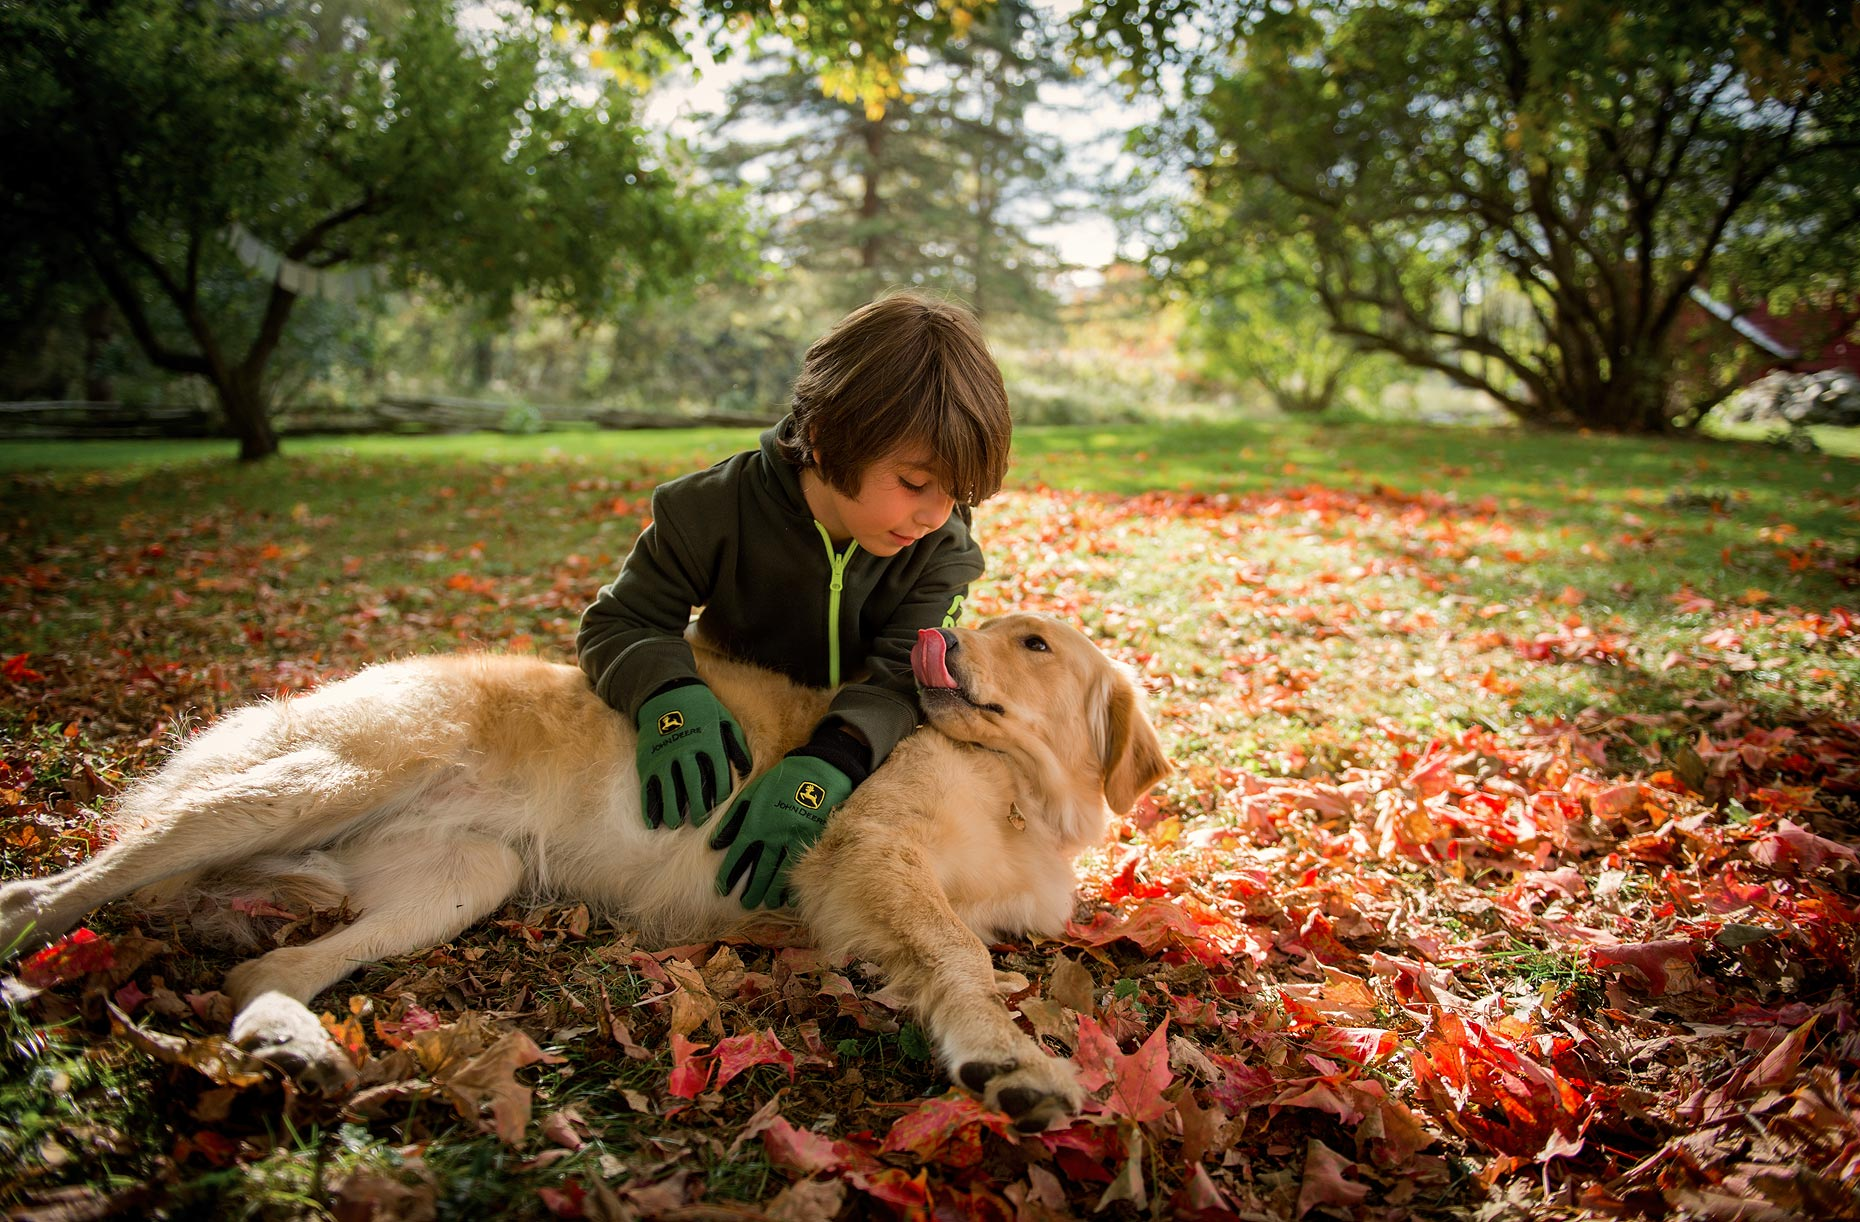 Boy and Dog